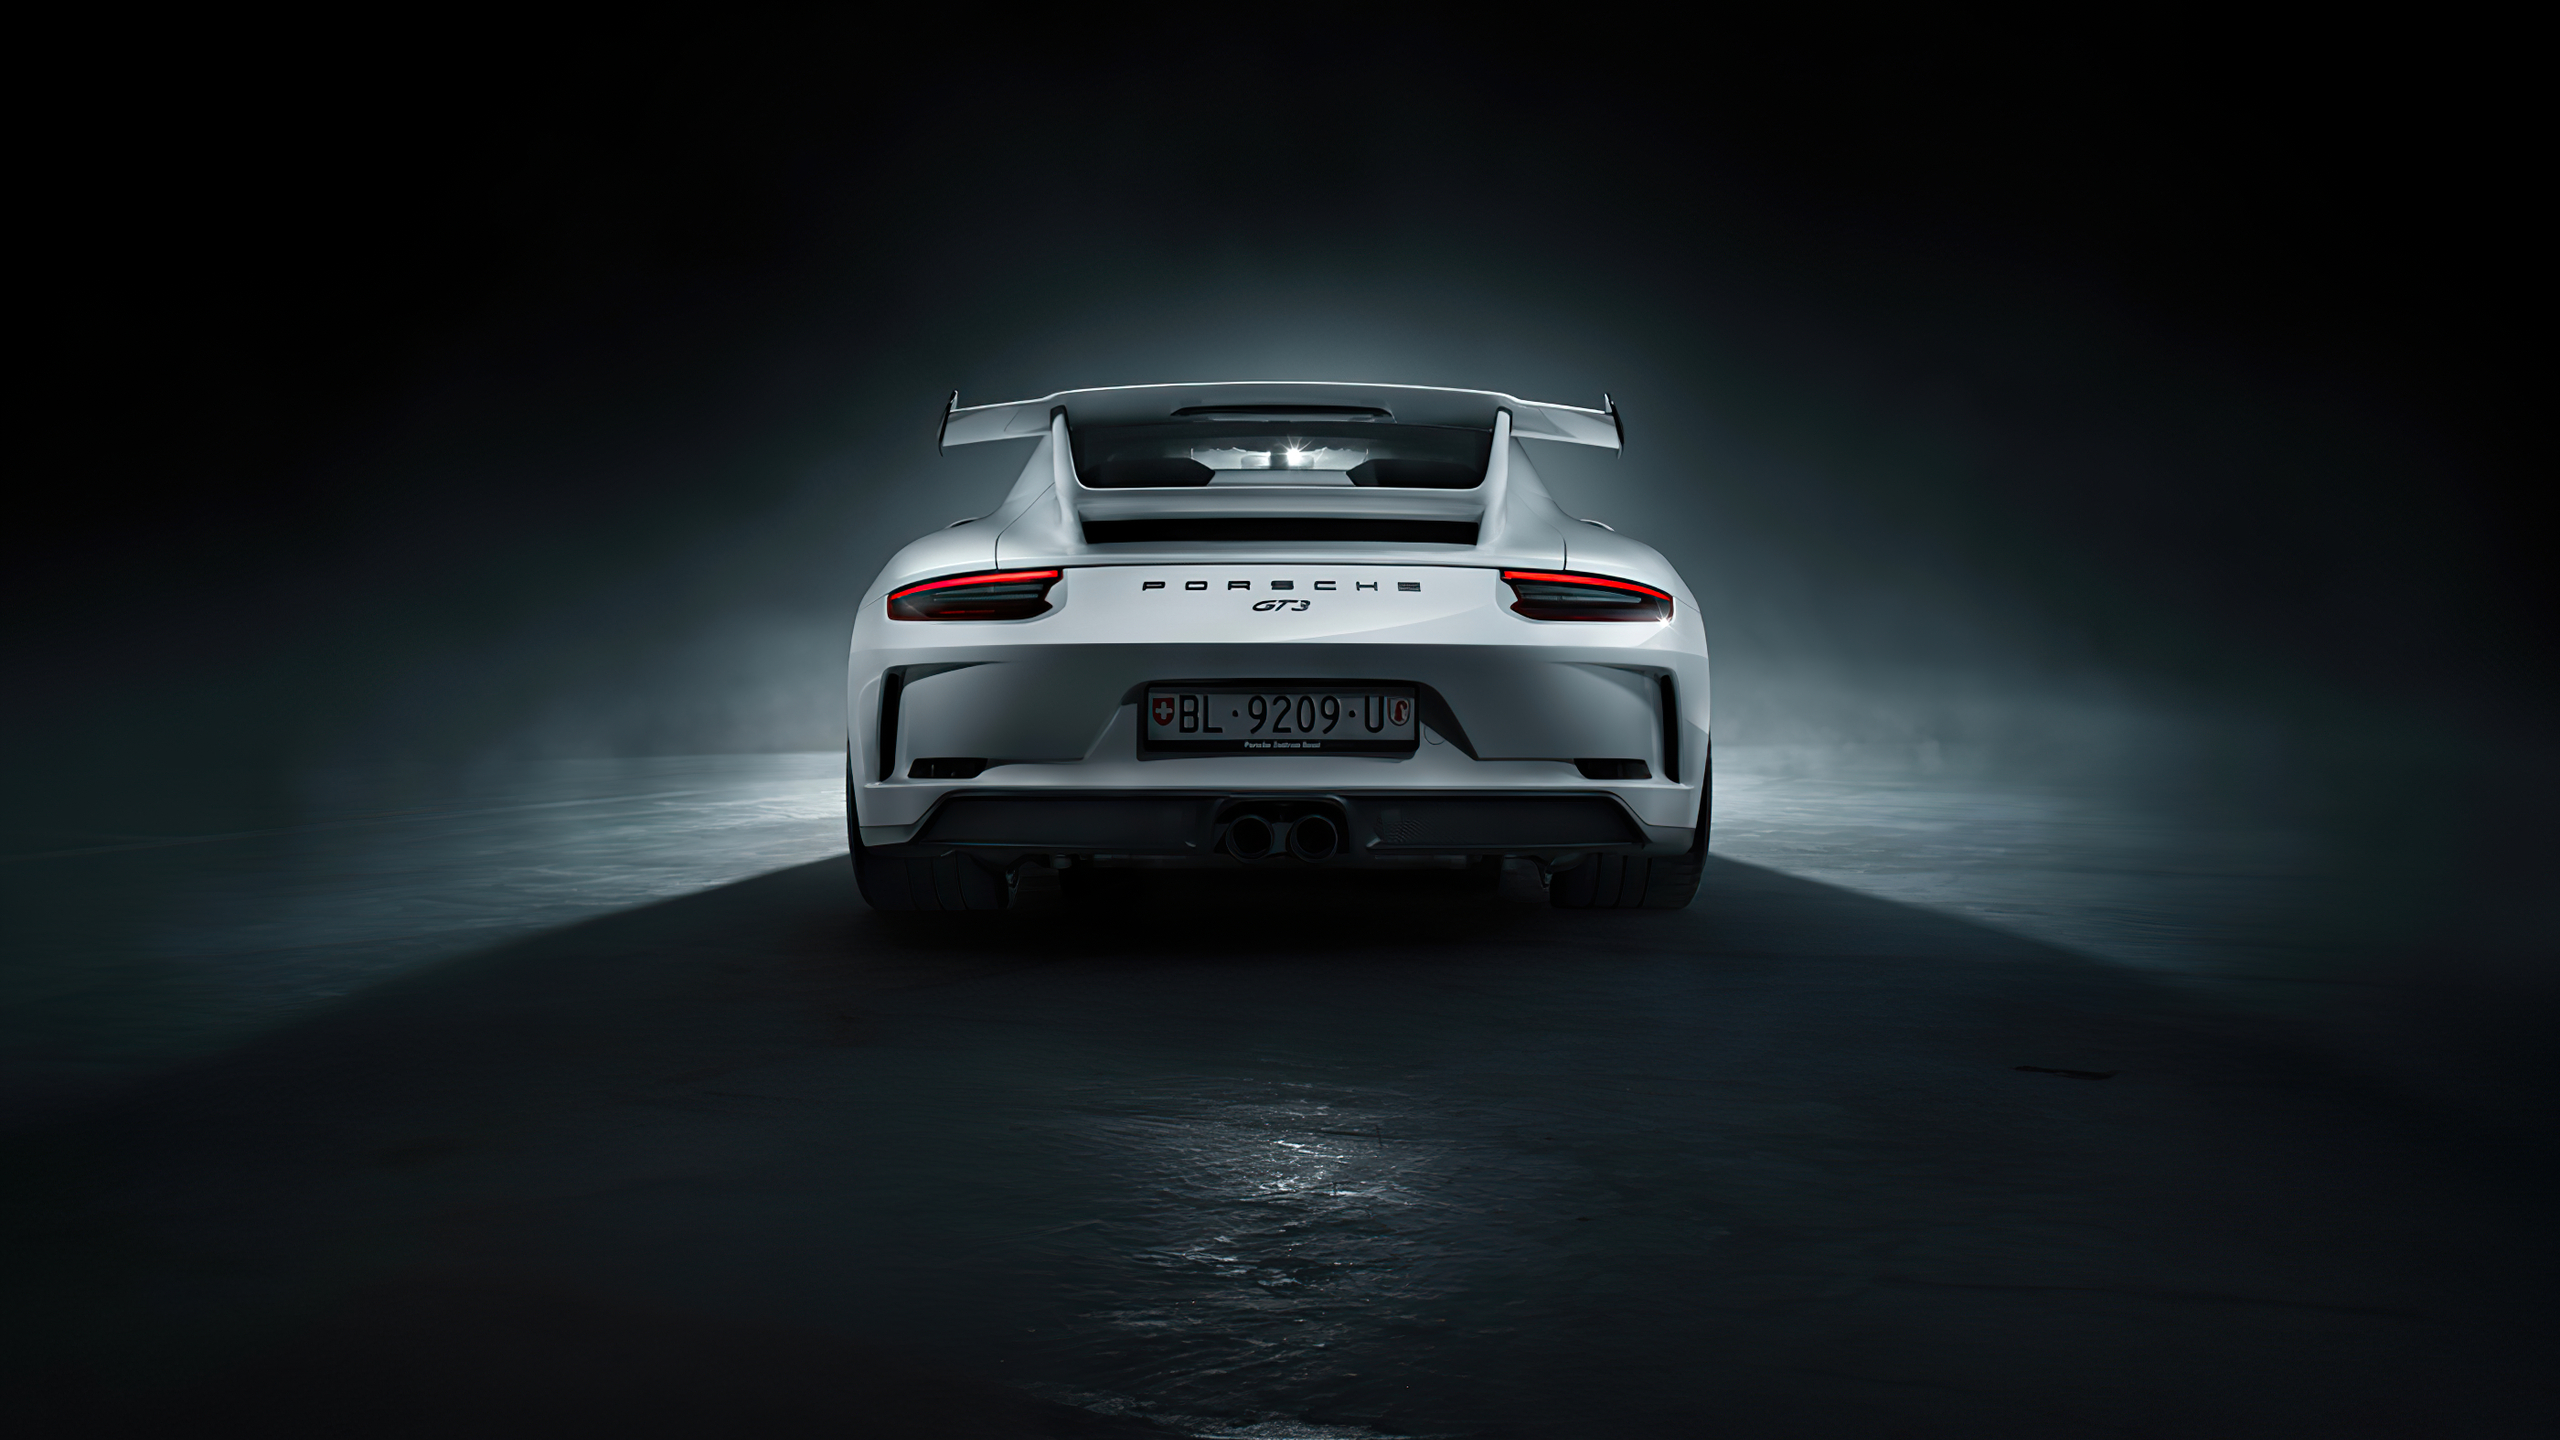 2560x1440 Porsche 911 Gt3 Rs Rear 1440p Resolution Hd 4k Wallpapers Images Backgrounds Photos And Pictures